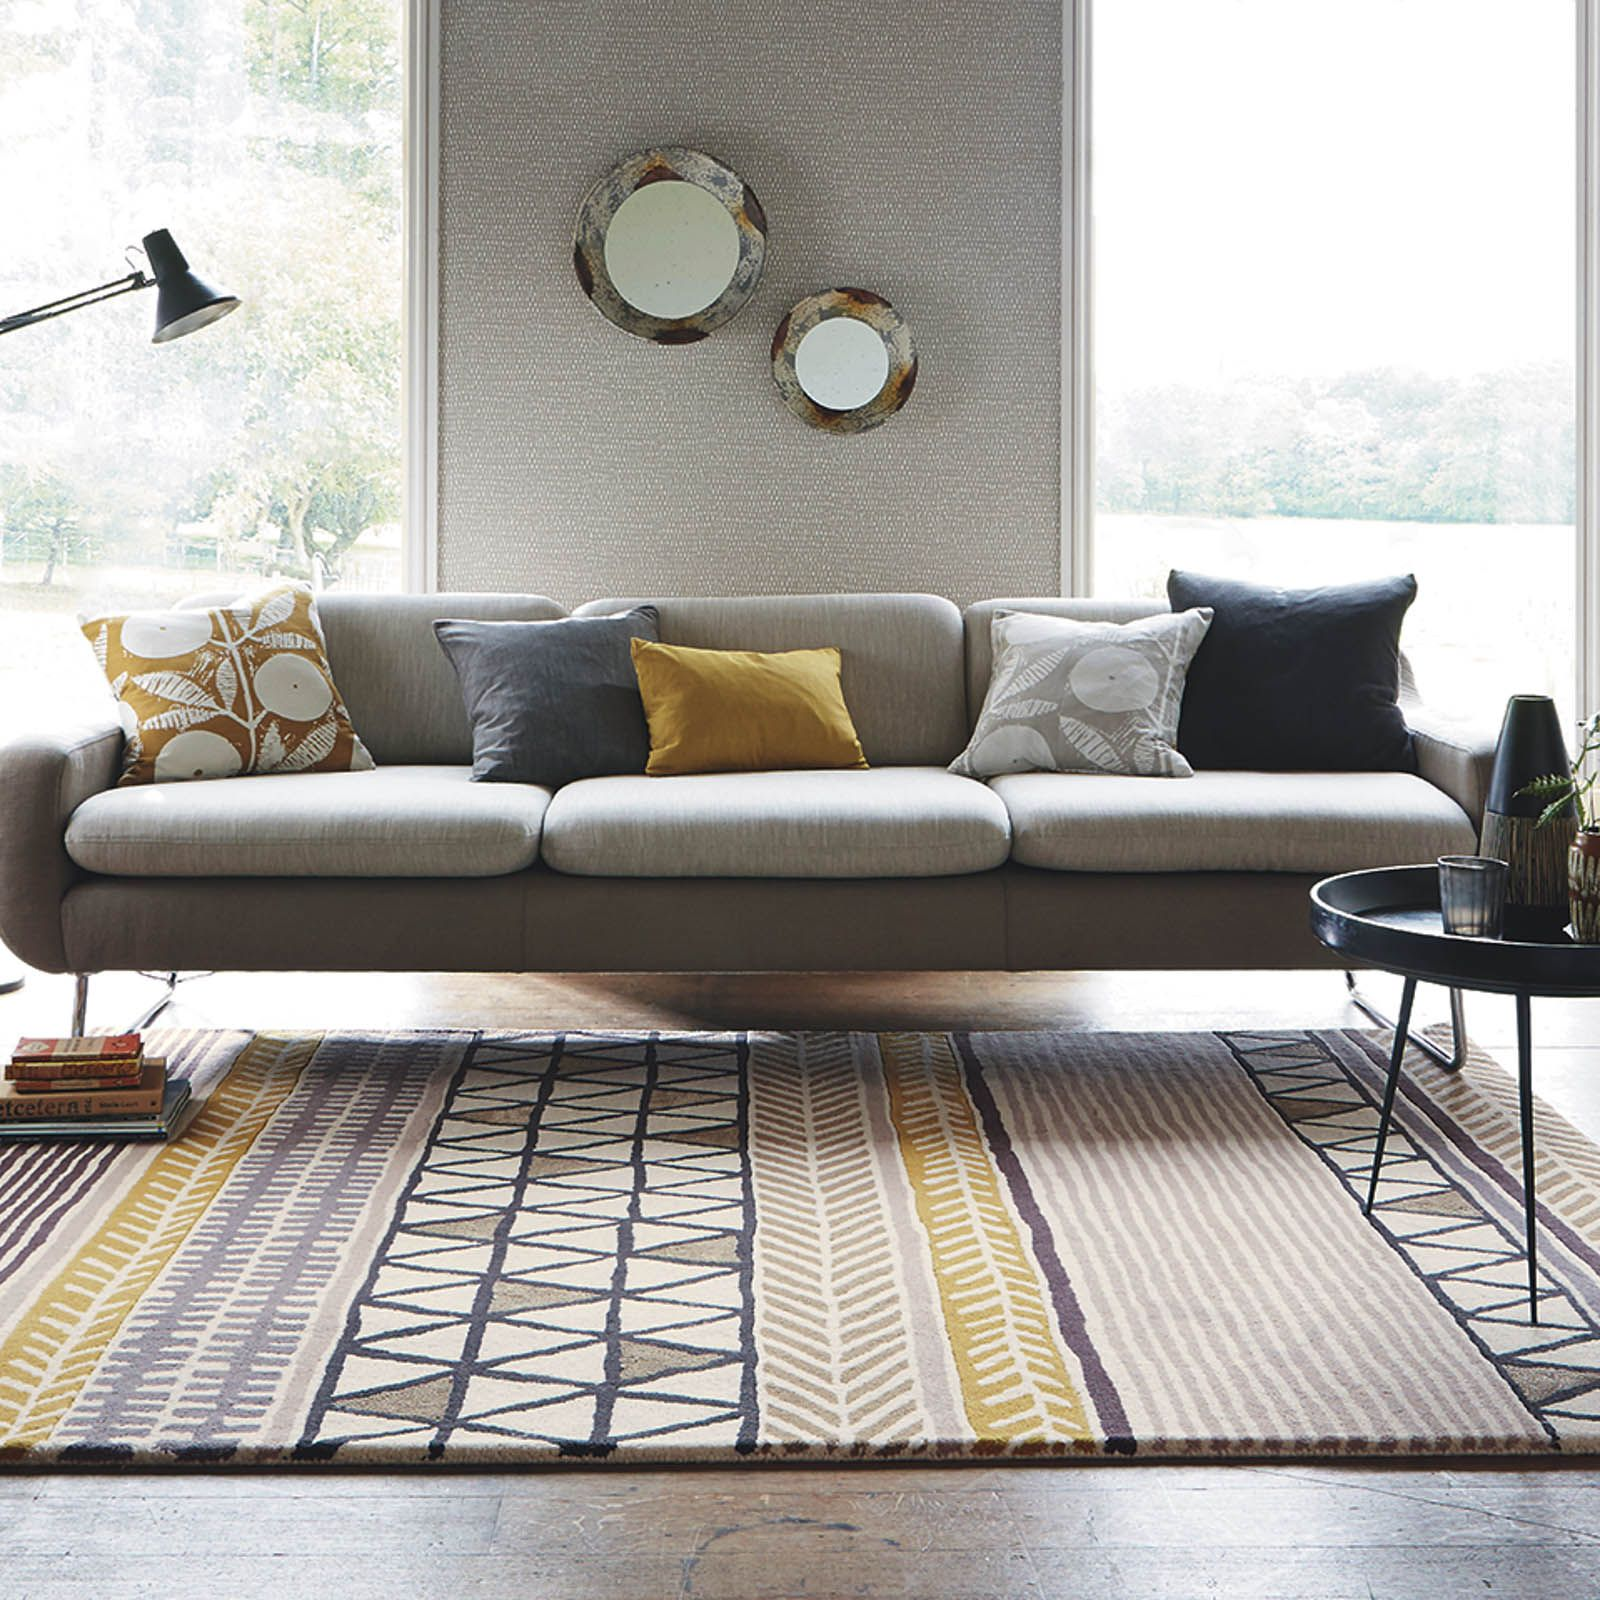 The thick, soft, 100% wool pile is designed to offer high levels of ...